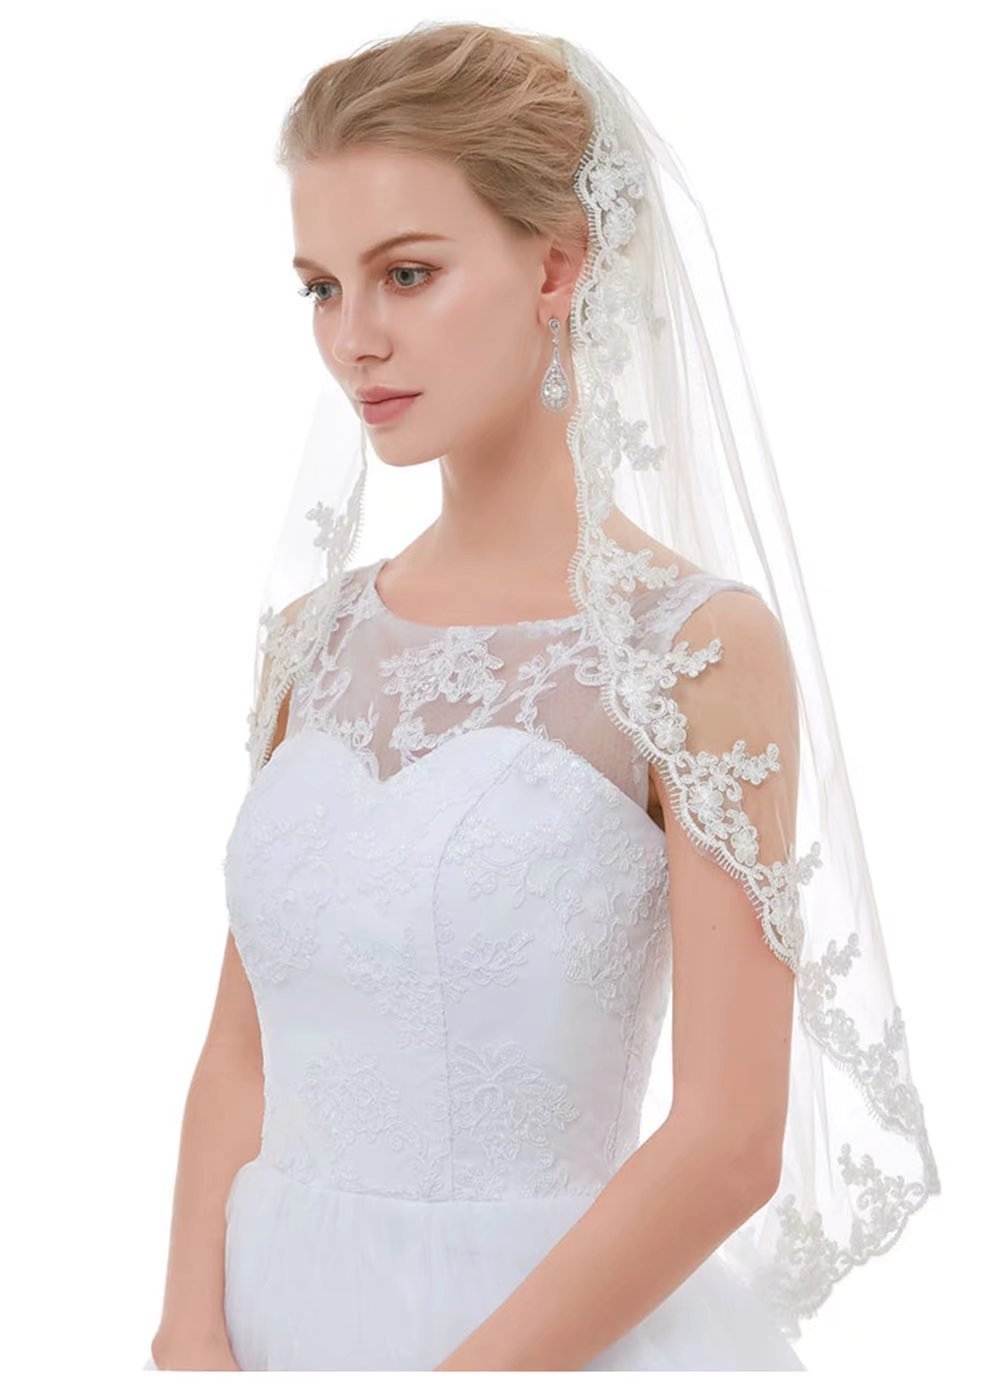 AIBIYI Lace Edge 1 Tier Short Bridal Veil with Comb ABY-V20